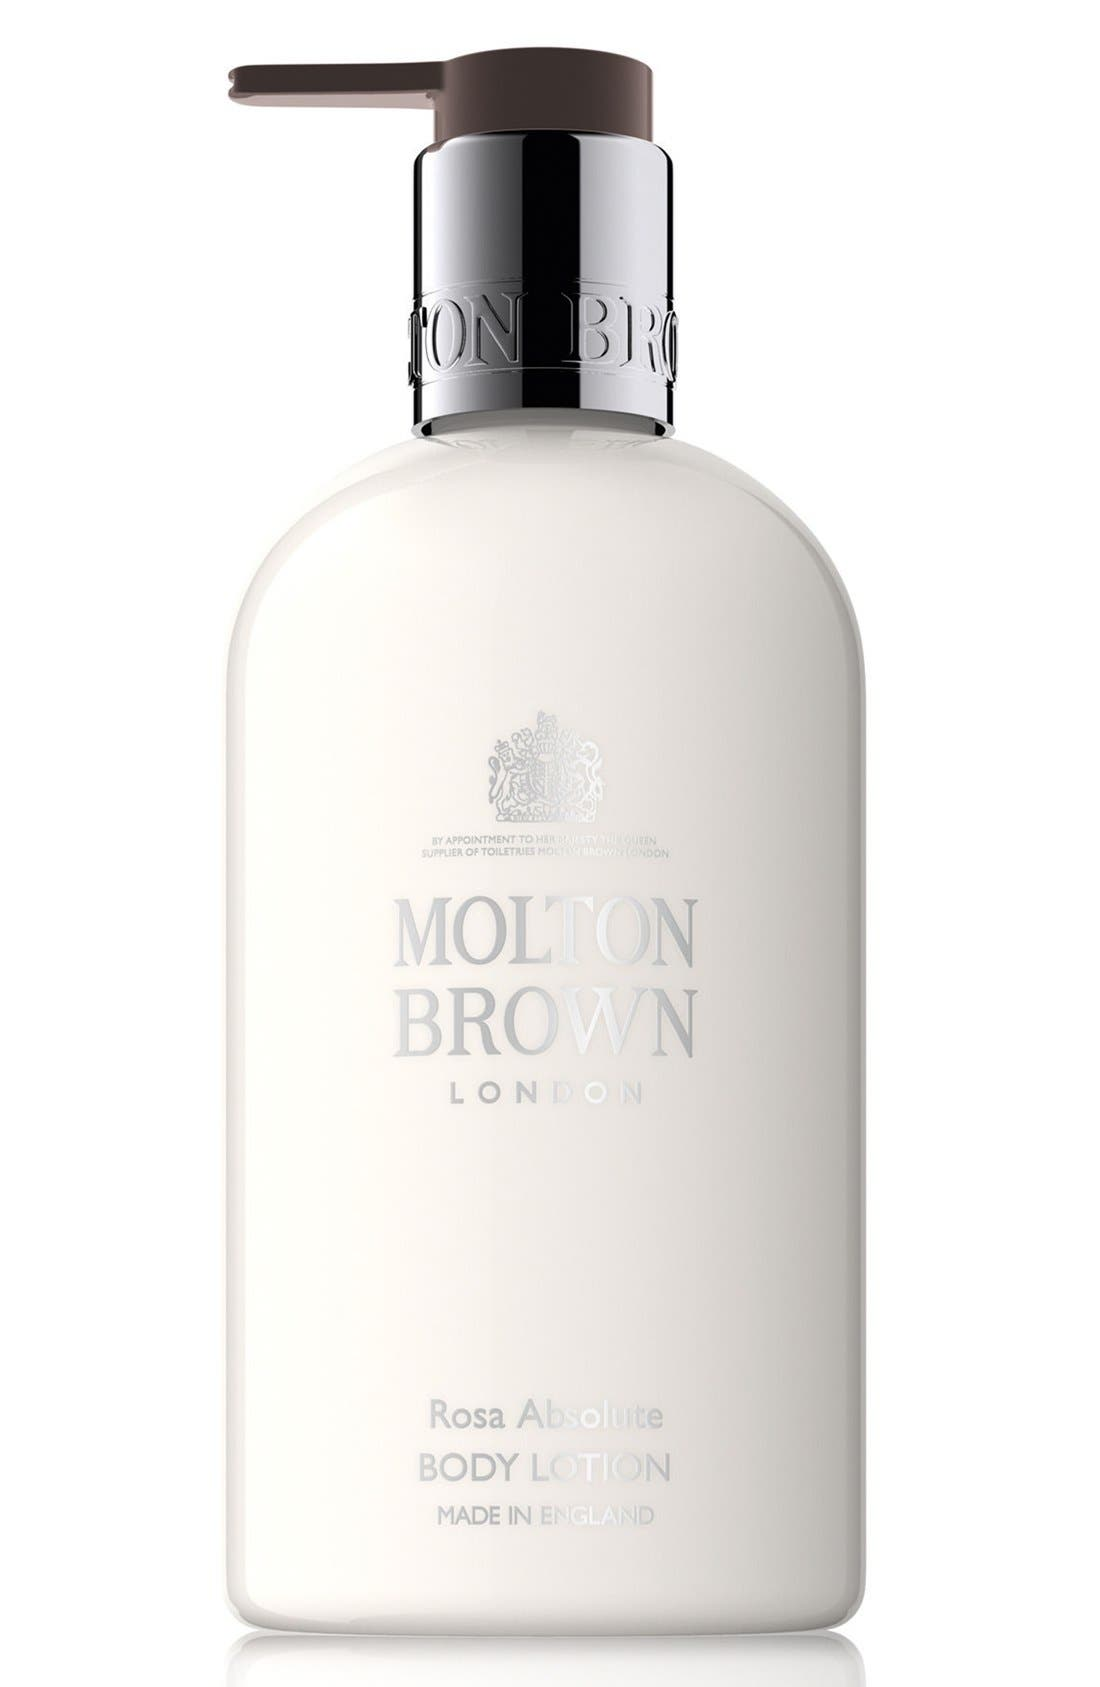 MOLTON BROWN London Body Lotion